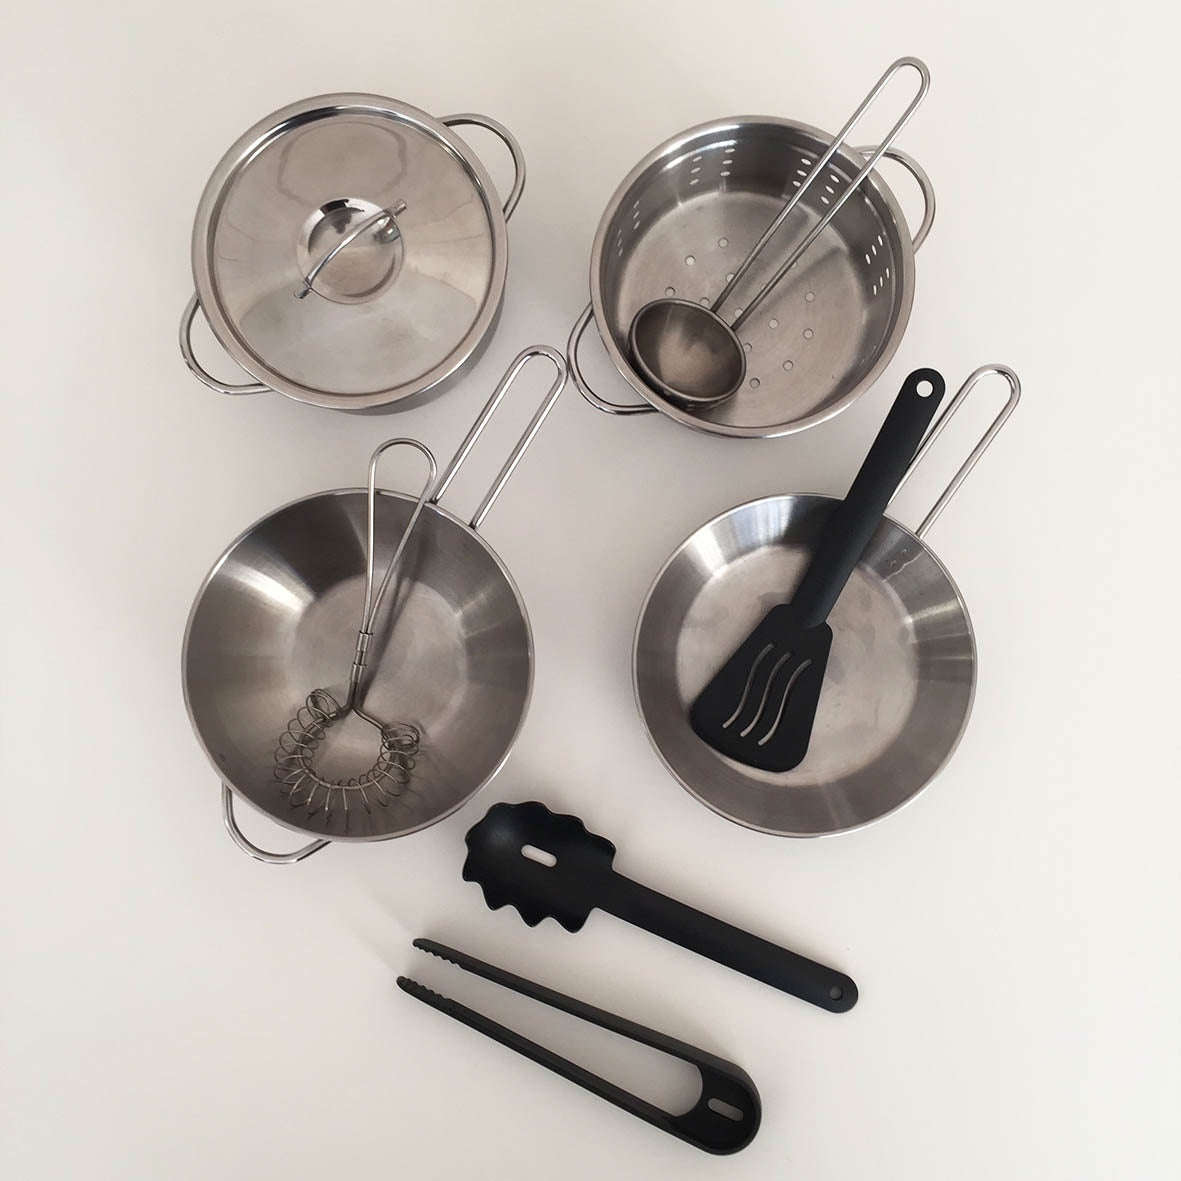 IKEA Duktig Kids Pots and Pans, Set of 4